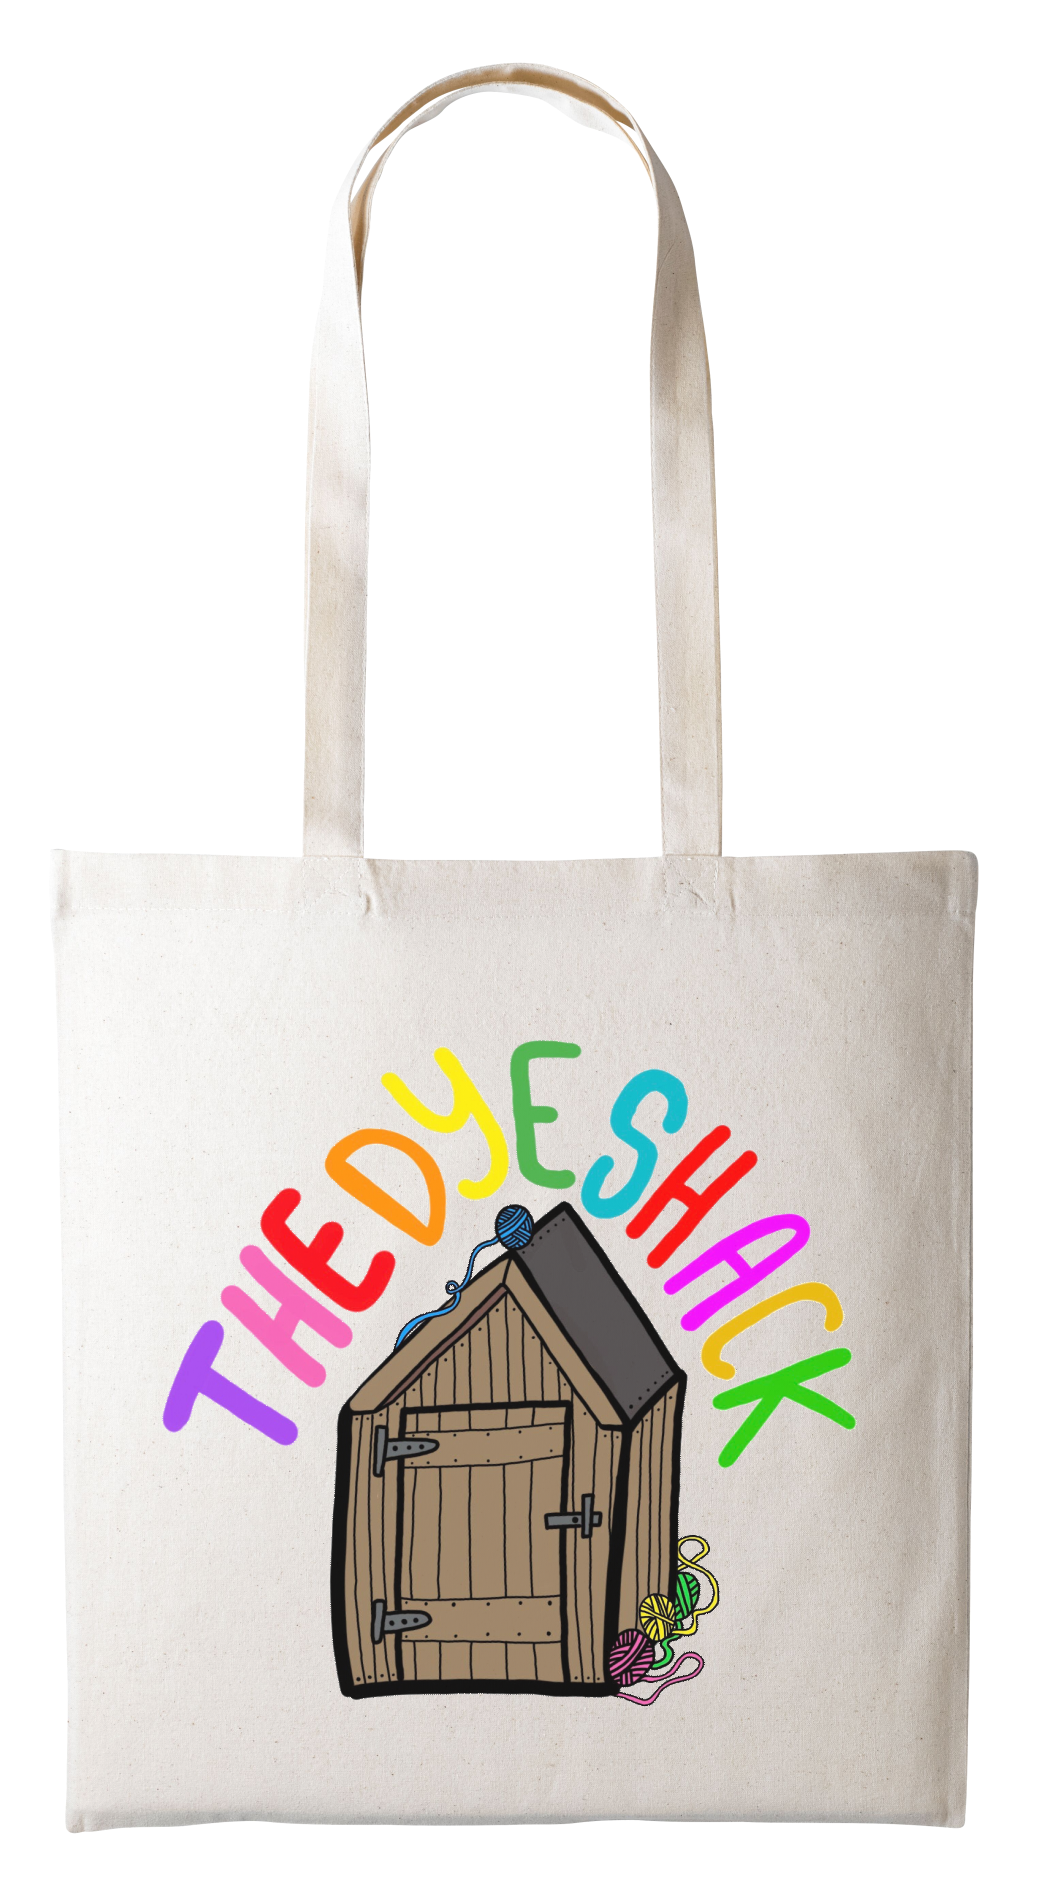 The Dye Shack tote bag